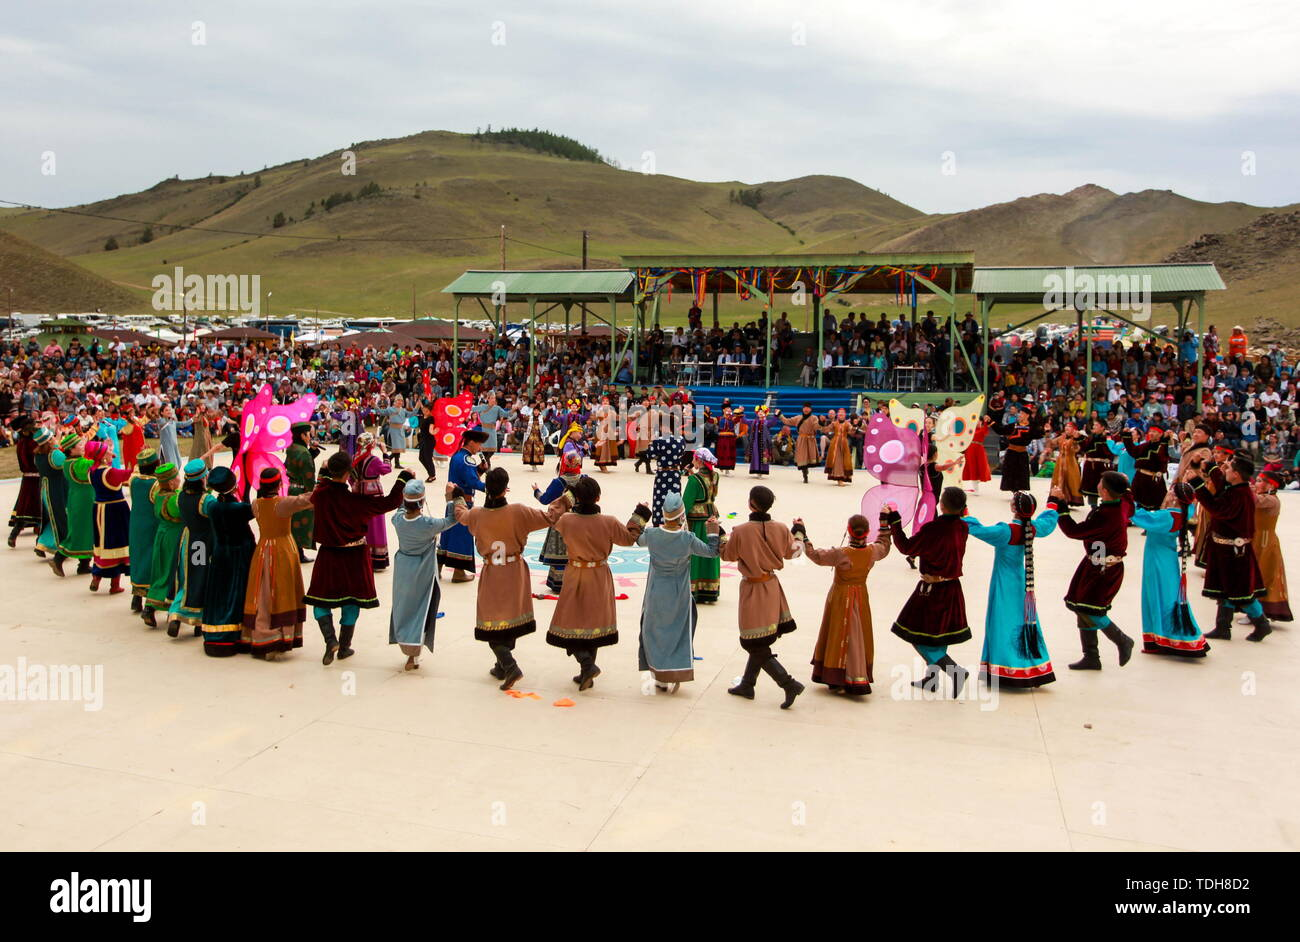 Irkutsk, Russia. 15th June, 2019. IRKUTSK REGION, RUSSIA - JUNE 15, 2019: Participants perform a round dance at the 7th Yordynian Games - Eurasian Peoples' Games, an ethnic and cultural festival of the local indigenous peoples, held at the foot of the sacred Mount Yord near Lake Baikal. Kirill Shipitsin/TASS Credit: ITAR-TASS News Agency/Alamy Live News Stock Photo